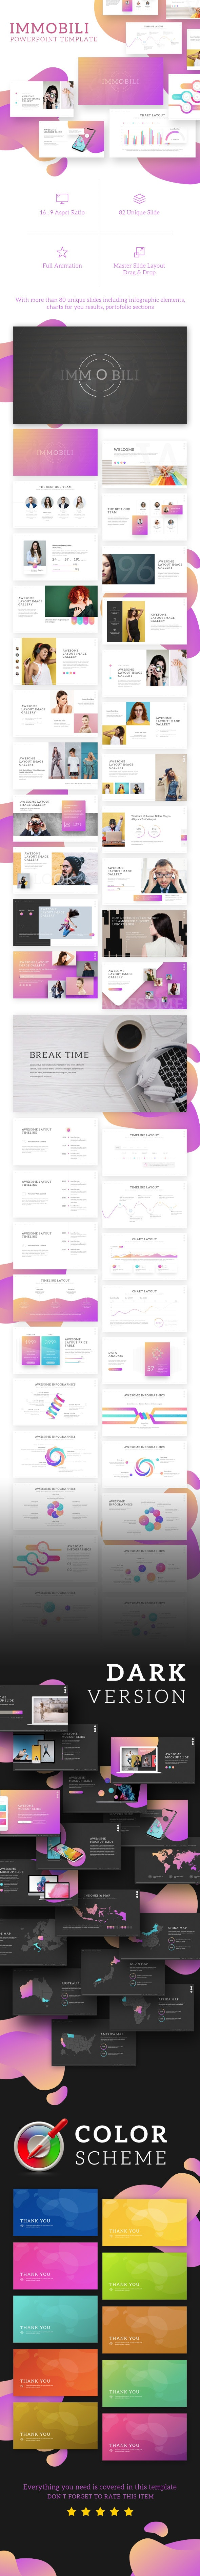 Immobili Powerpoint Template - Creative PowerPoint Templates